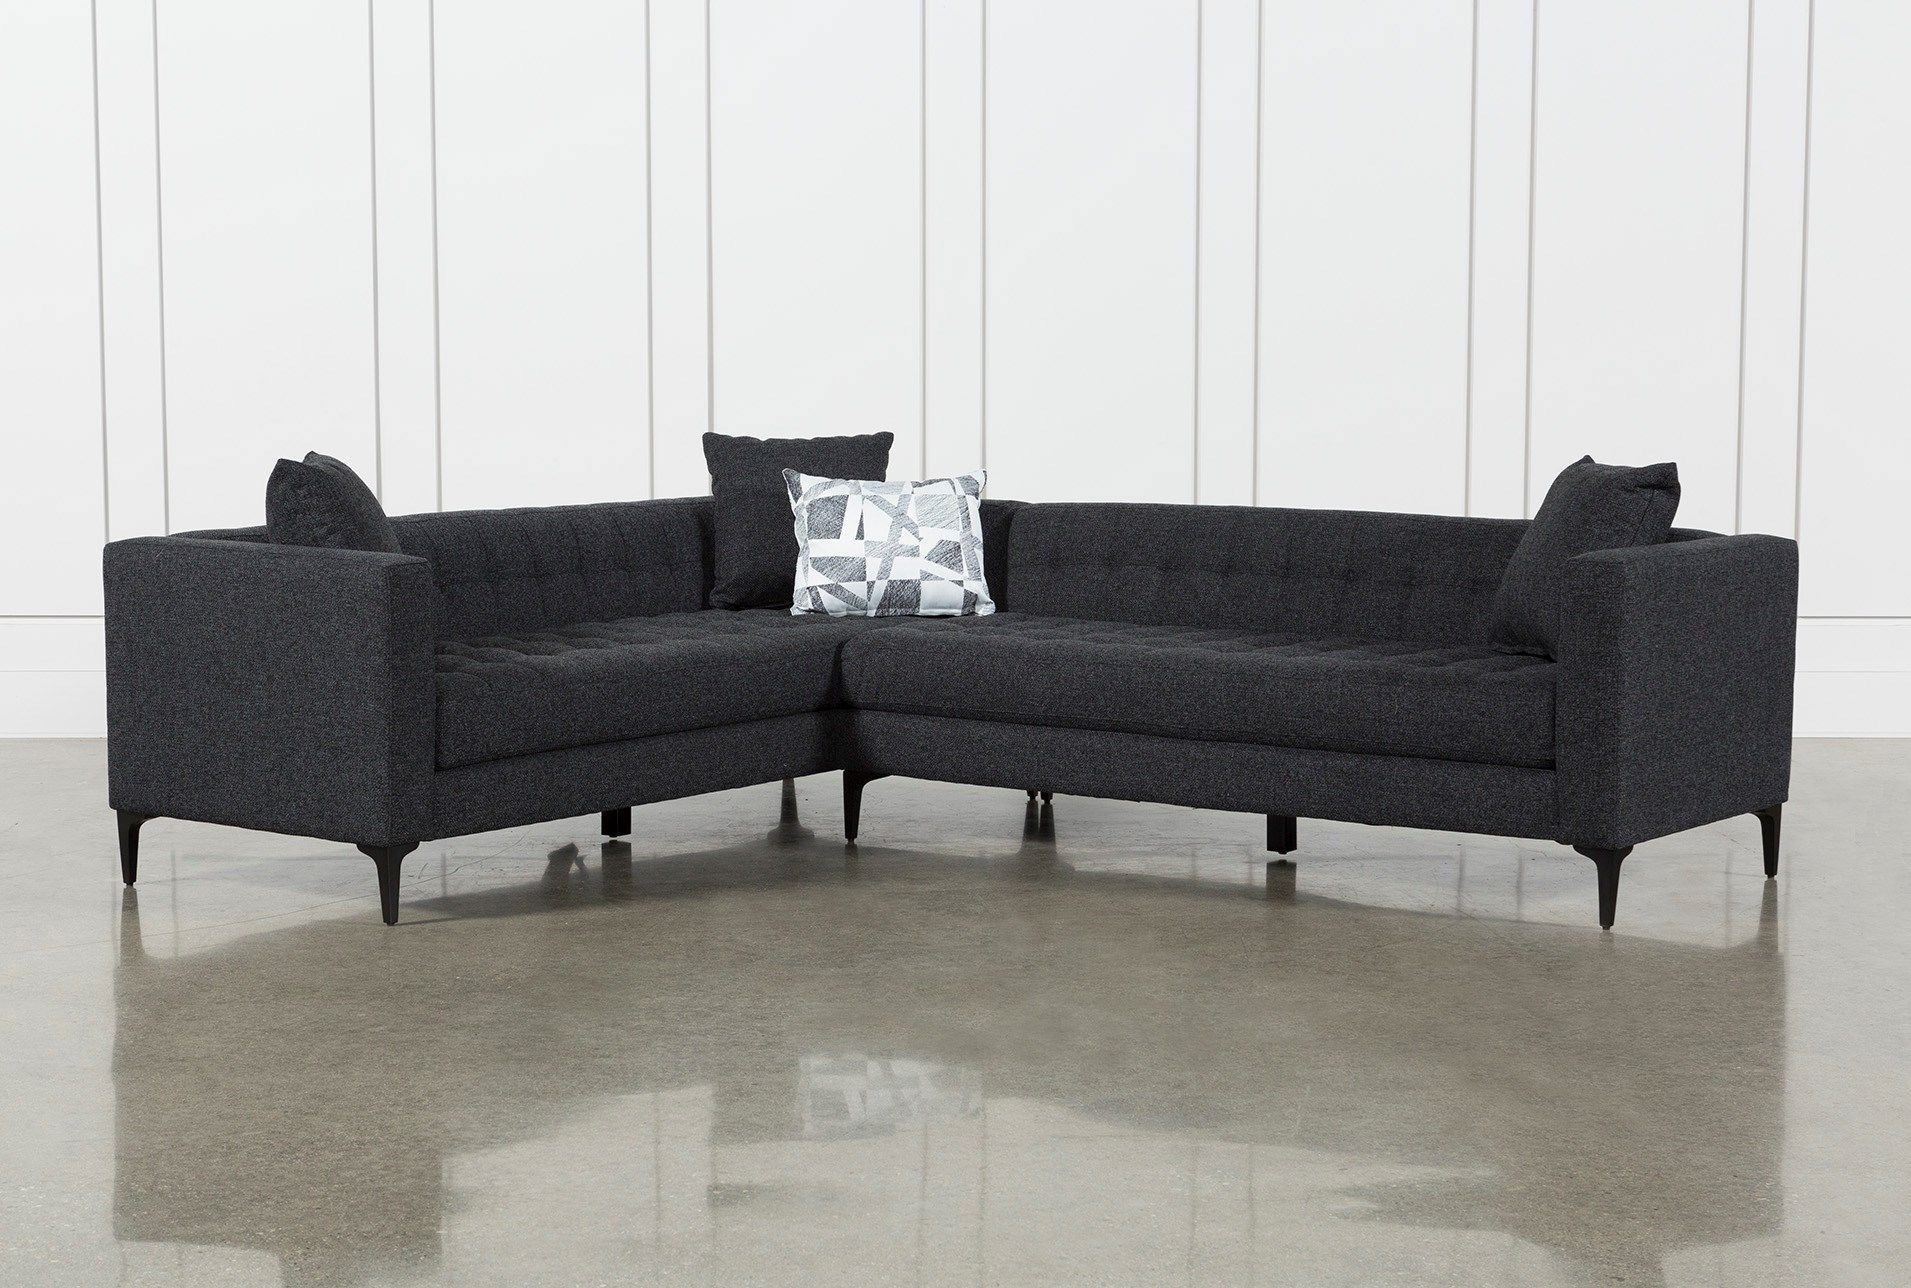 Anson 2 Piece Sectional In 2018 | Decorating | Pinterest | House With Regard To Matteo Arm Sofa Chairs By Nate Berkus And Jeremiah Brent (Image 2 of 25)